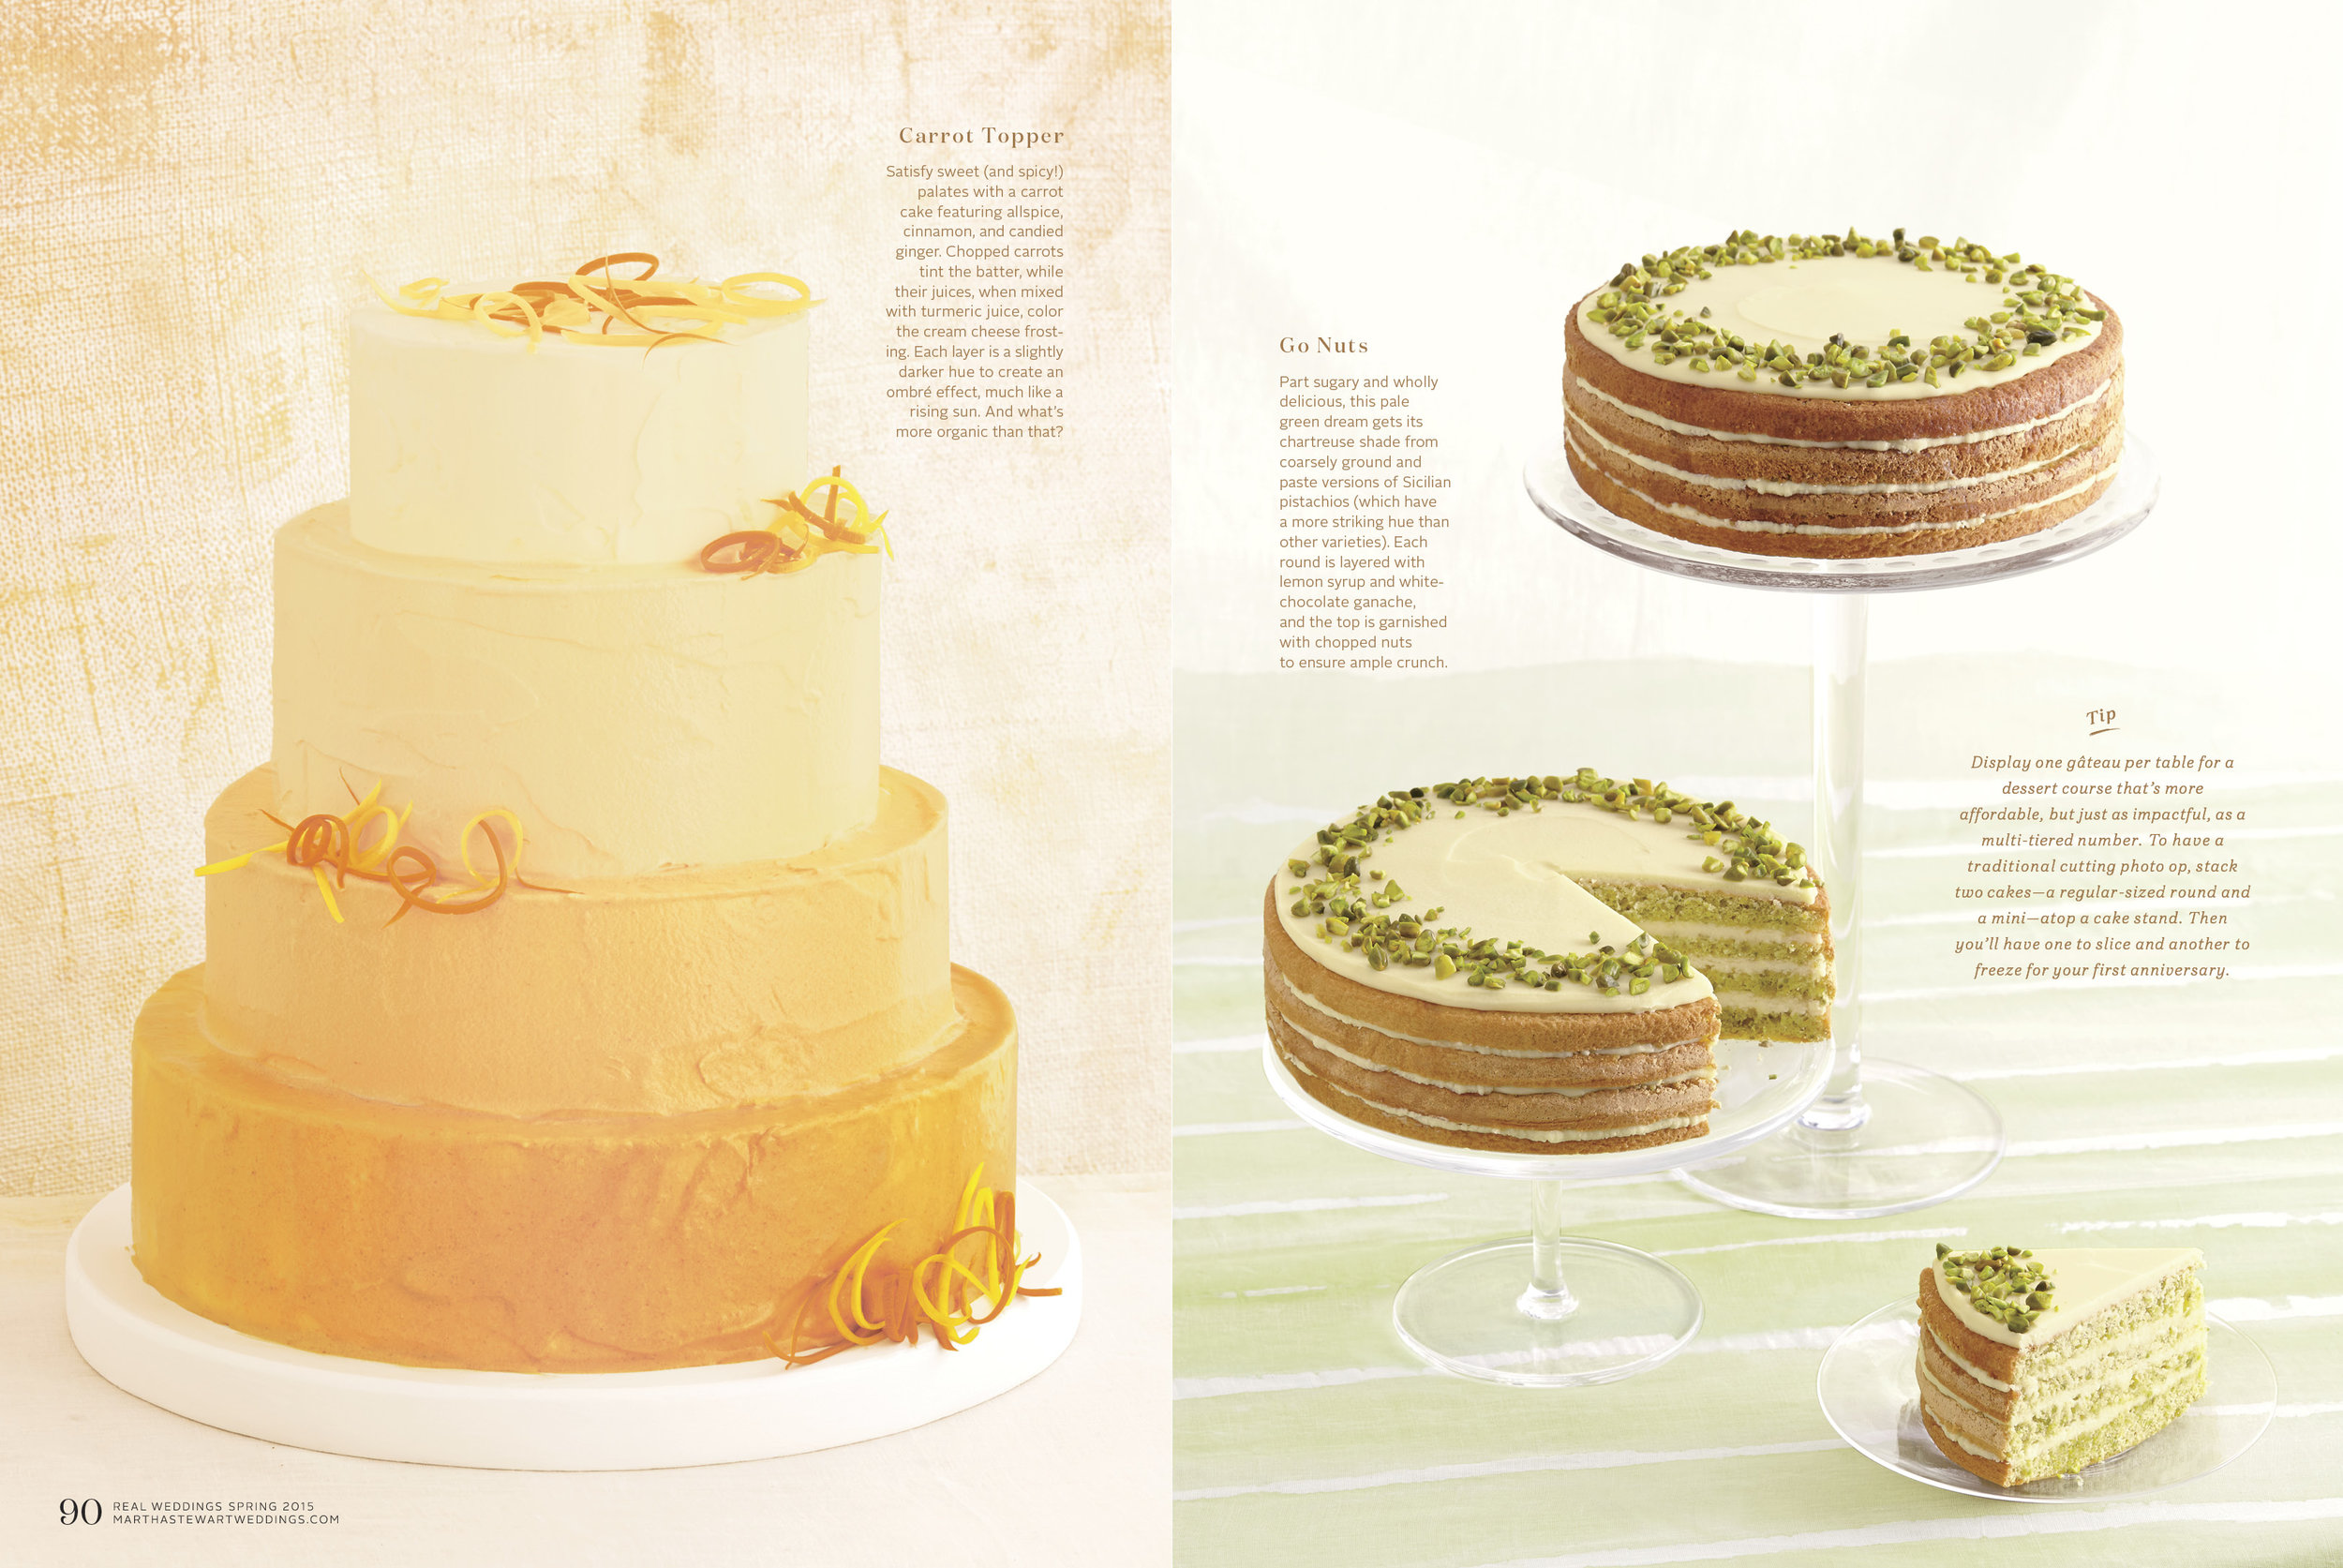 Carrot Cake and Pistachio Cakes. Photo by Linda Pugliese for Martha Stewart Weddings